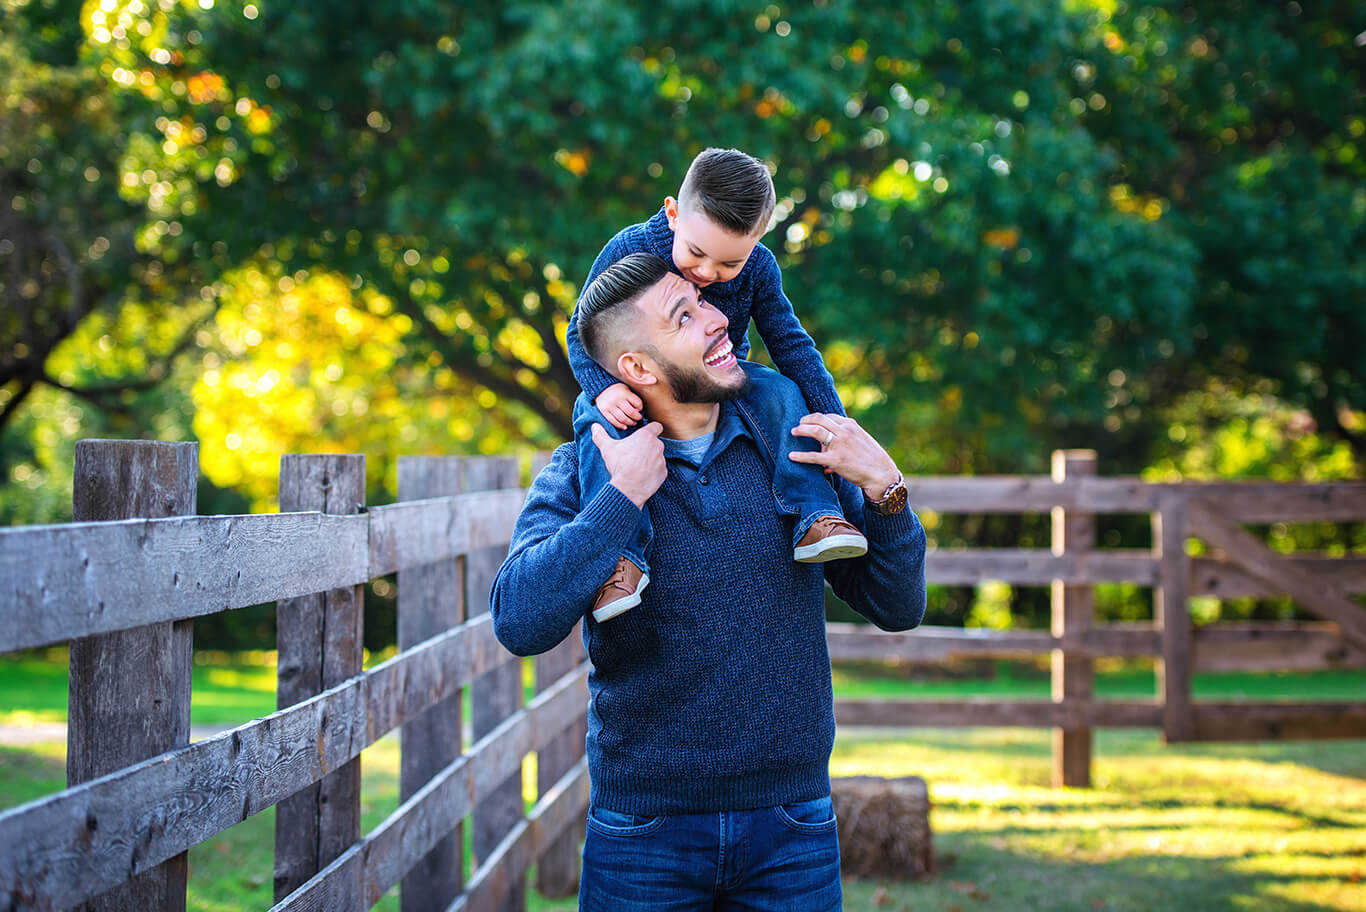 Family photography outdoors at the farm father and son photoshoot